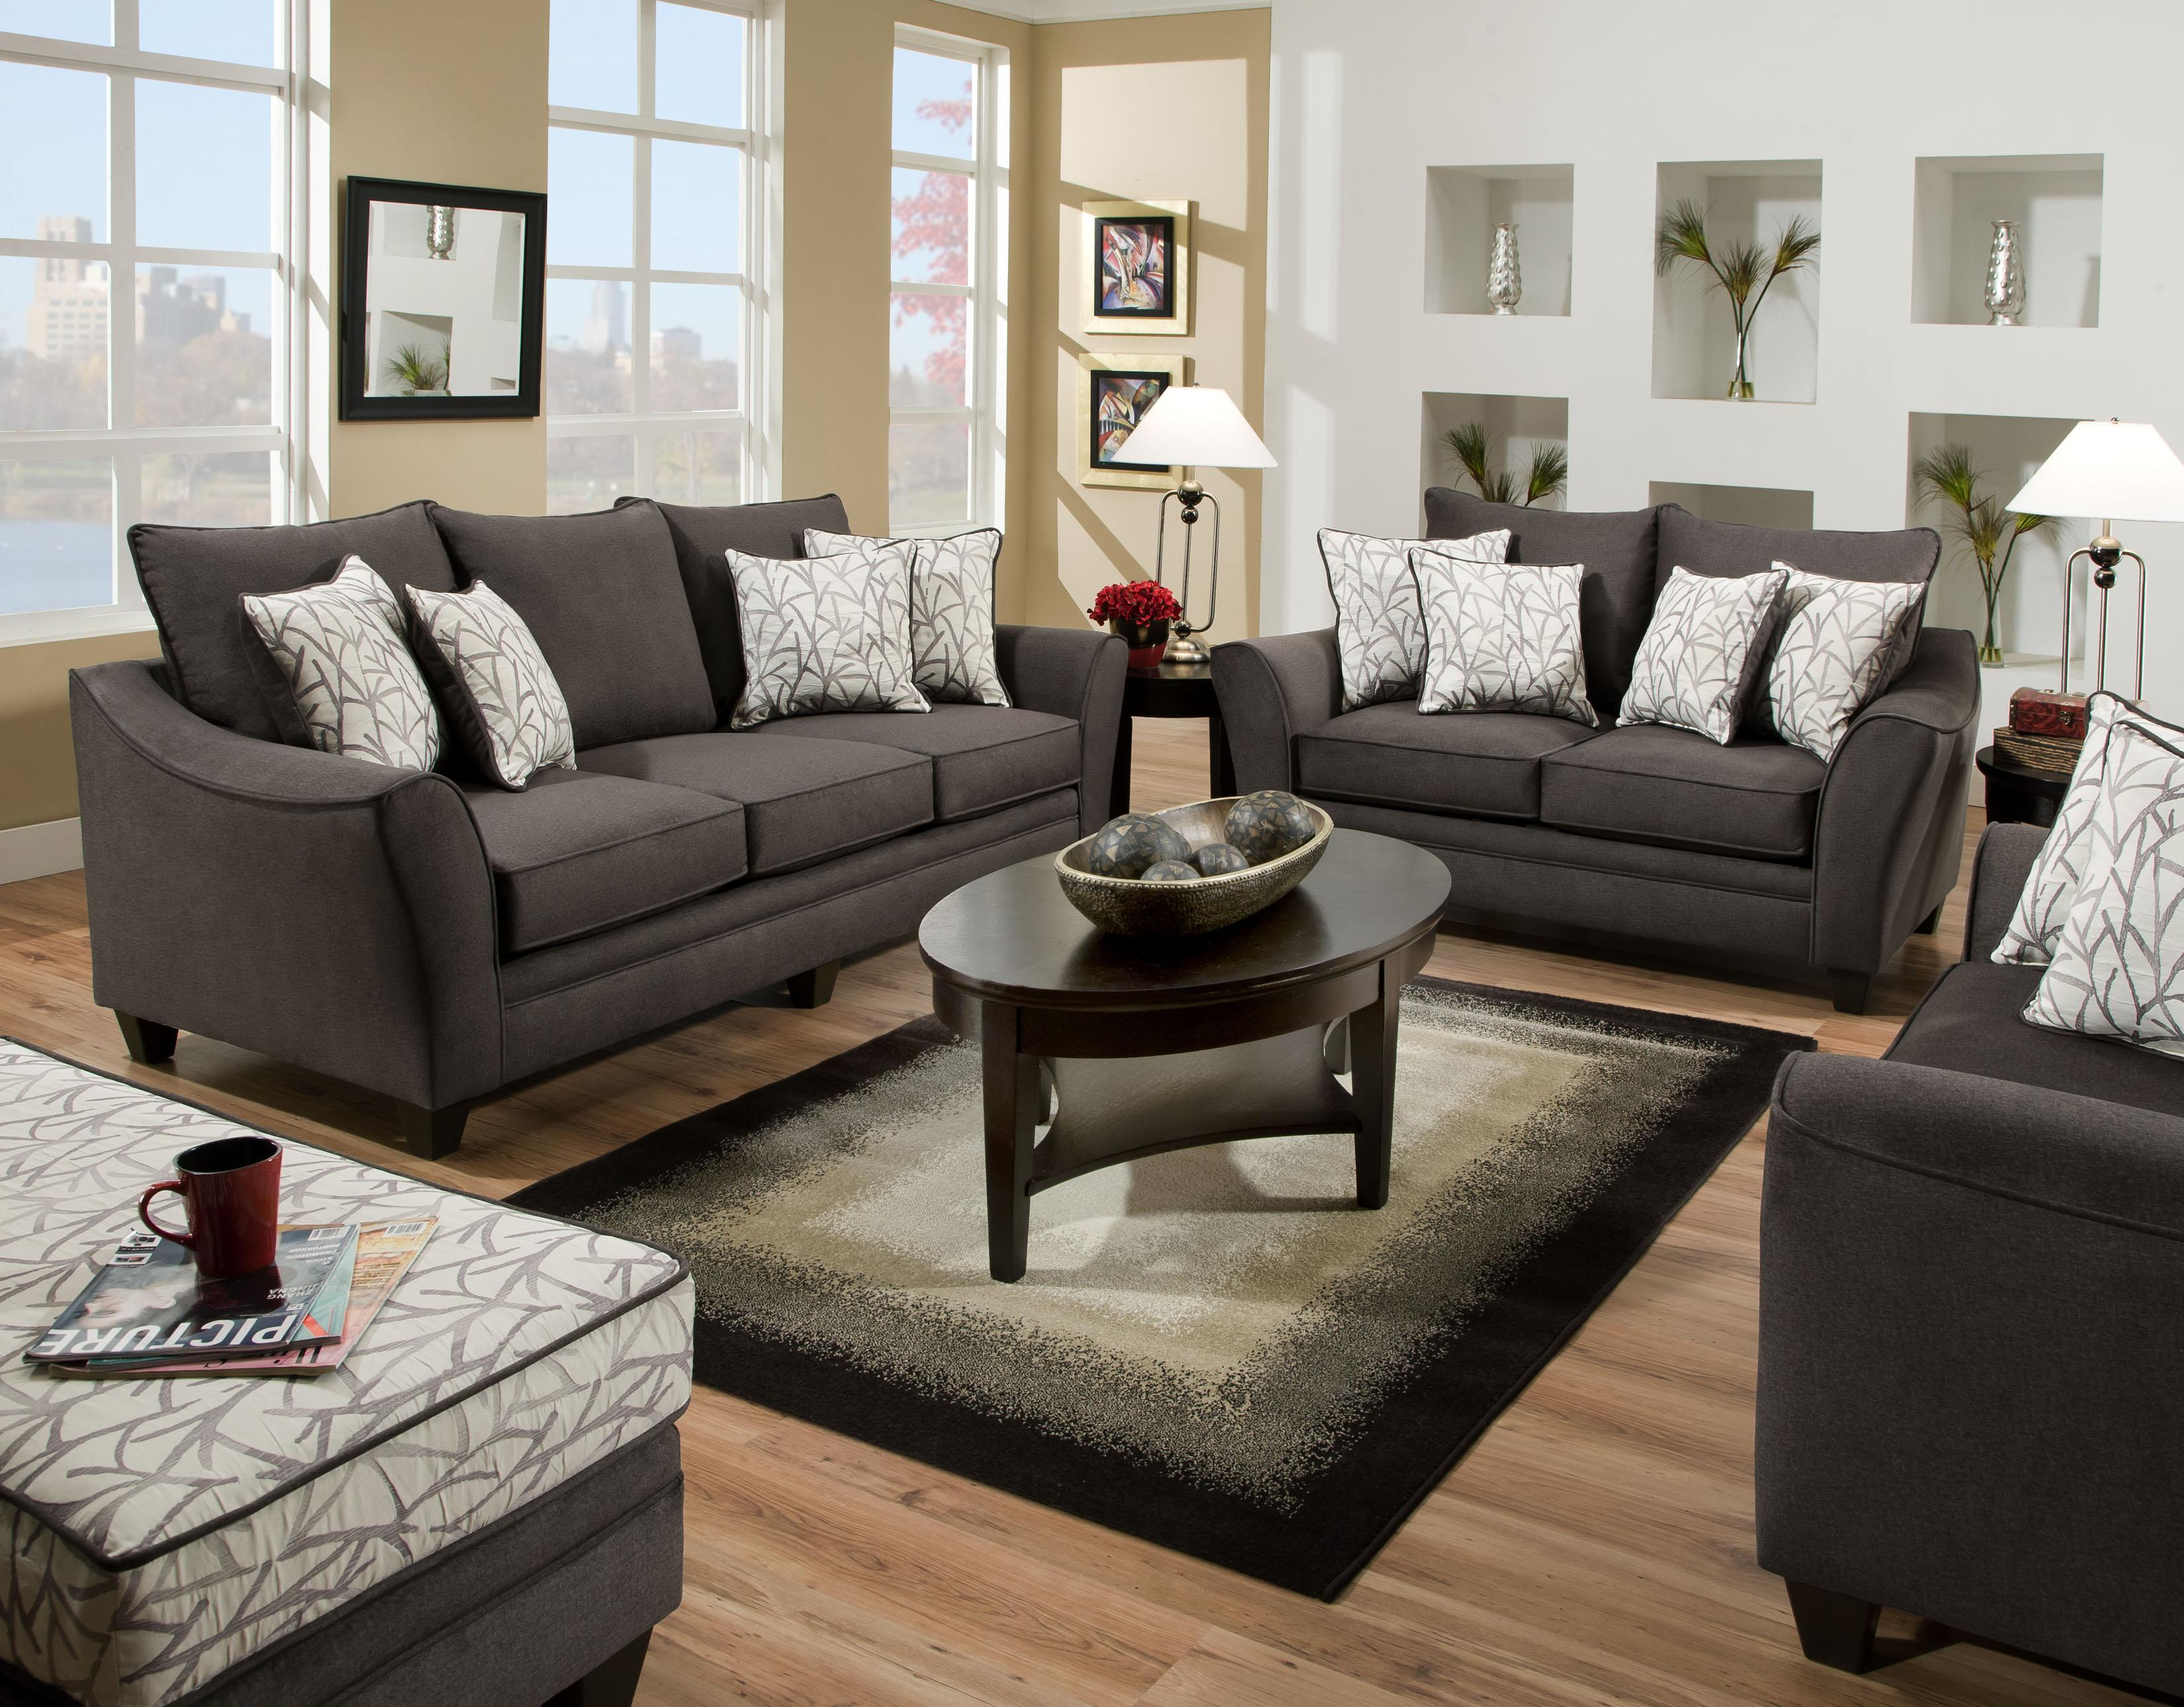 3850 Stationary Living Room Group by Vendor 610 at Becker Furniture